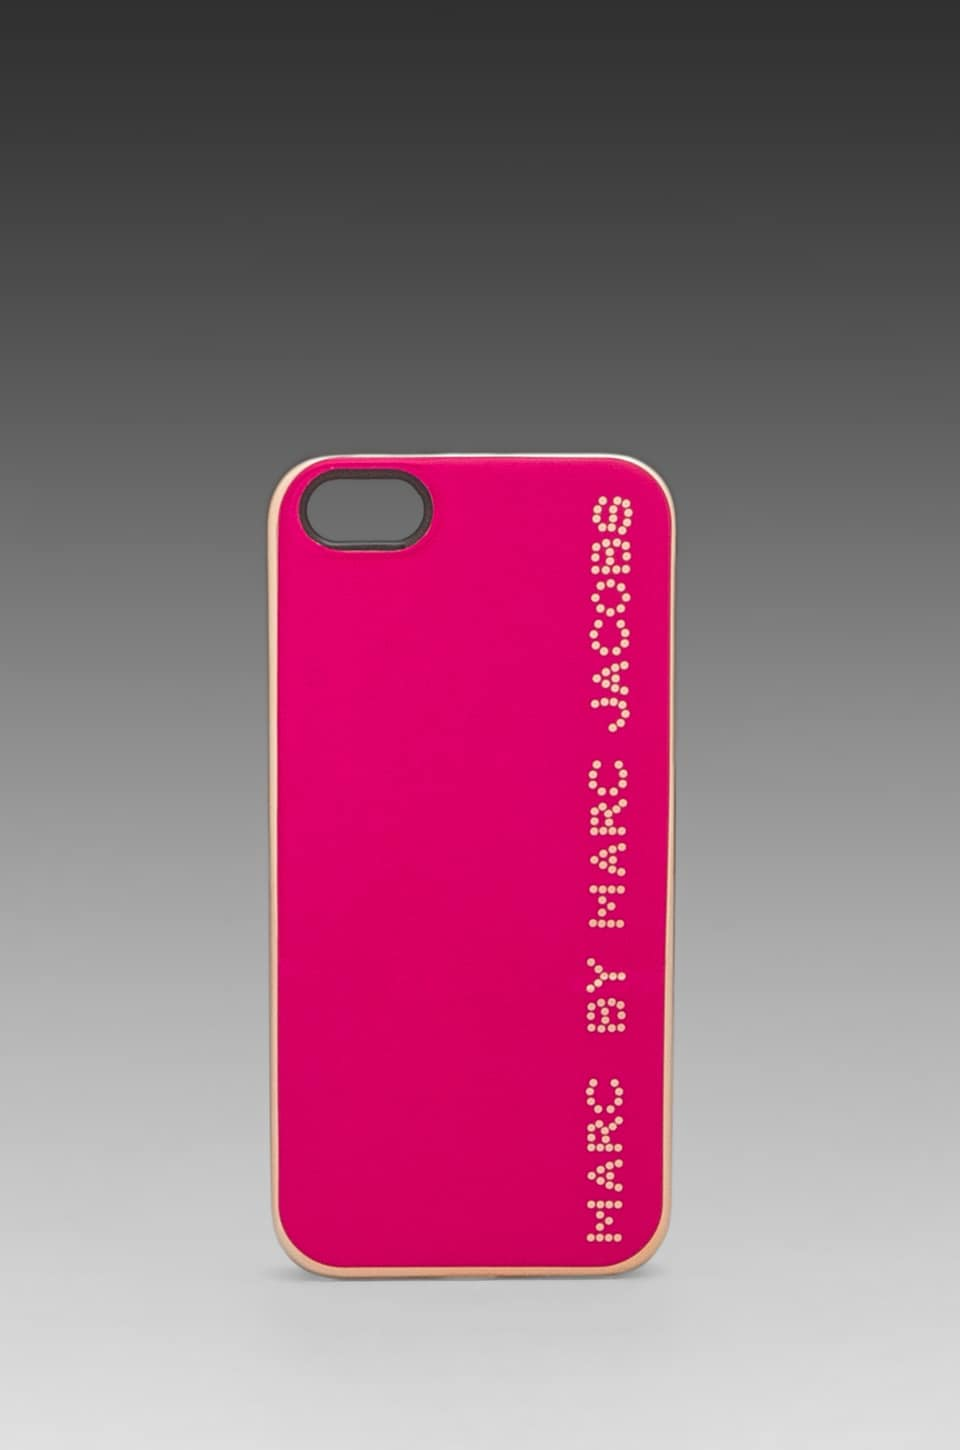 Marc by Marc Jacobs Sweet Jane Metallic iPhone 5 Case in Pop Pink